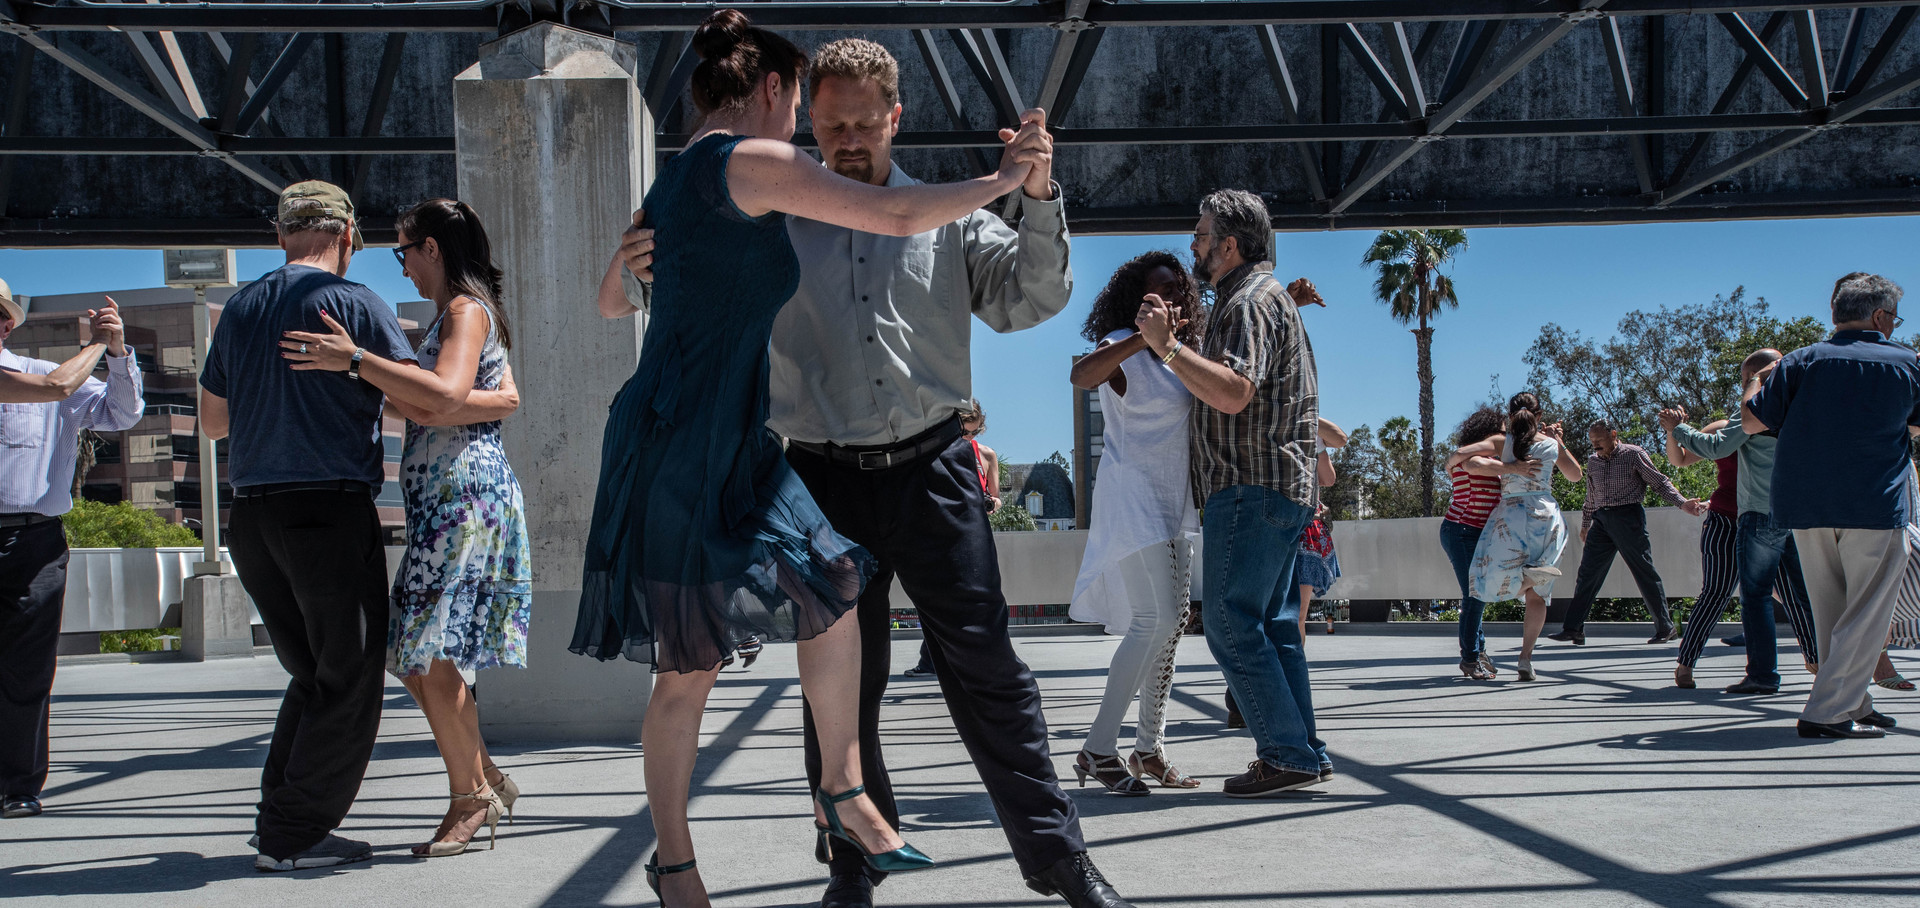 Tango rebels at La Brea Tarpits